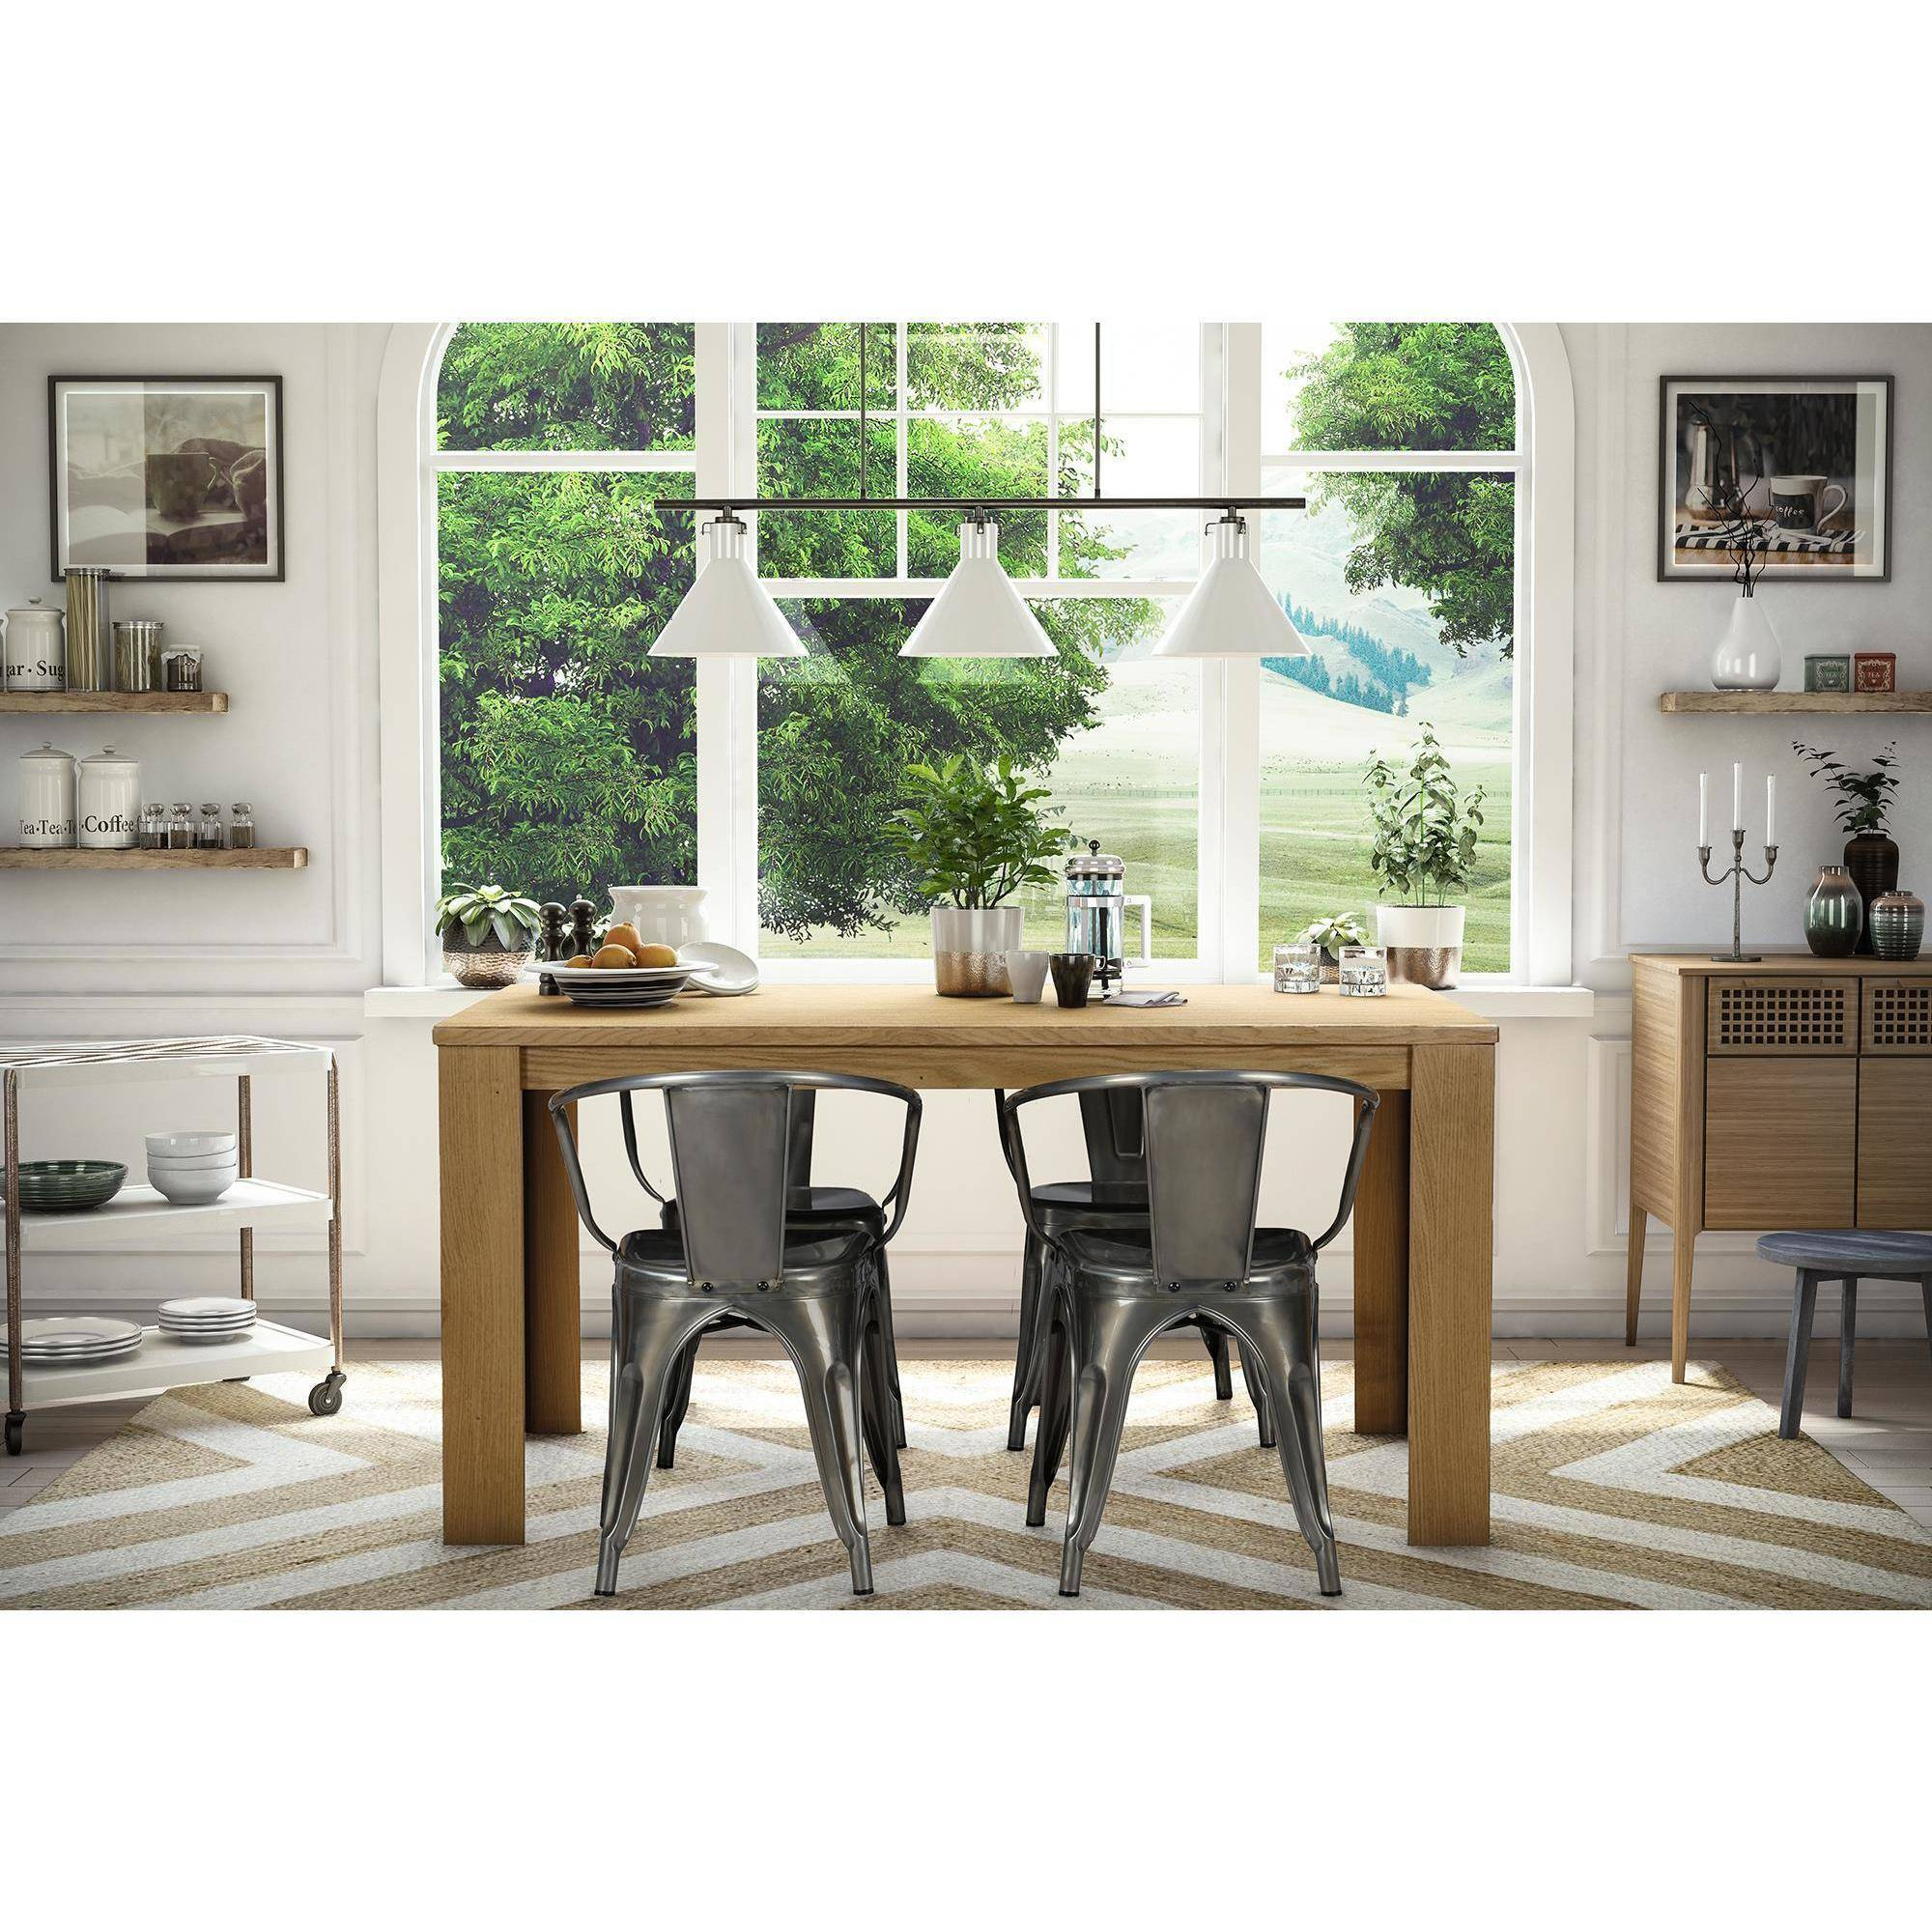 metal dining room furniture. perfect metal dorel home products elise metal dining chair set of 2 multiple colors throughout room furniture